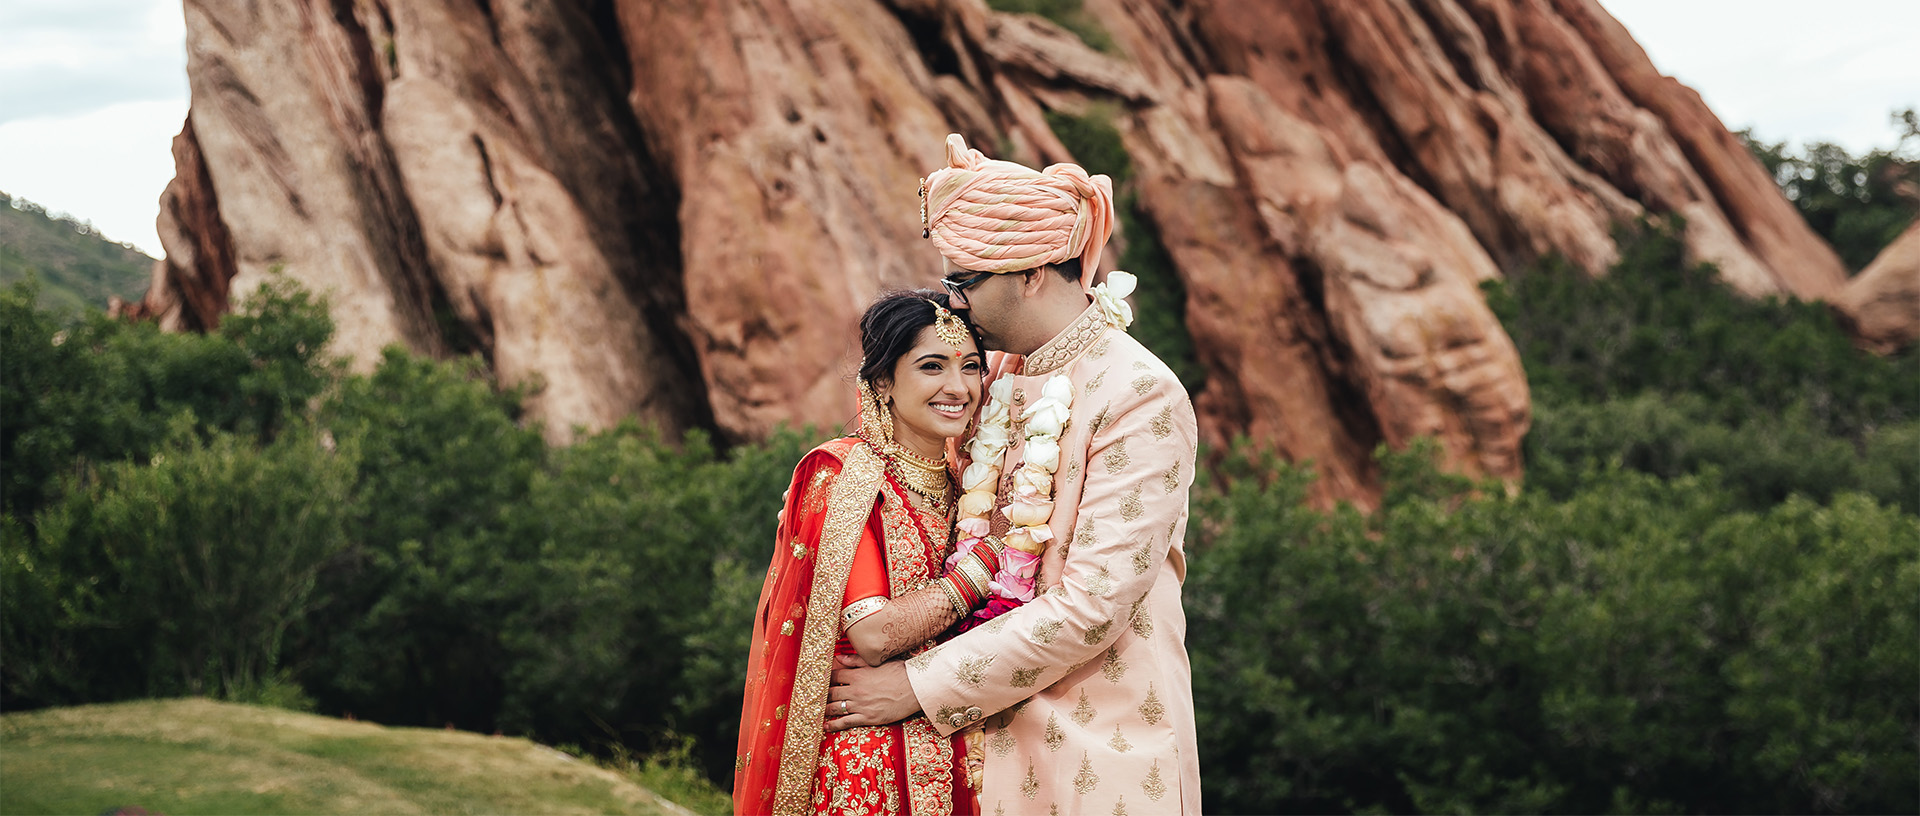 Aneesh + Maitri | Littleton, Colorado | Arrowhead Golf Club